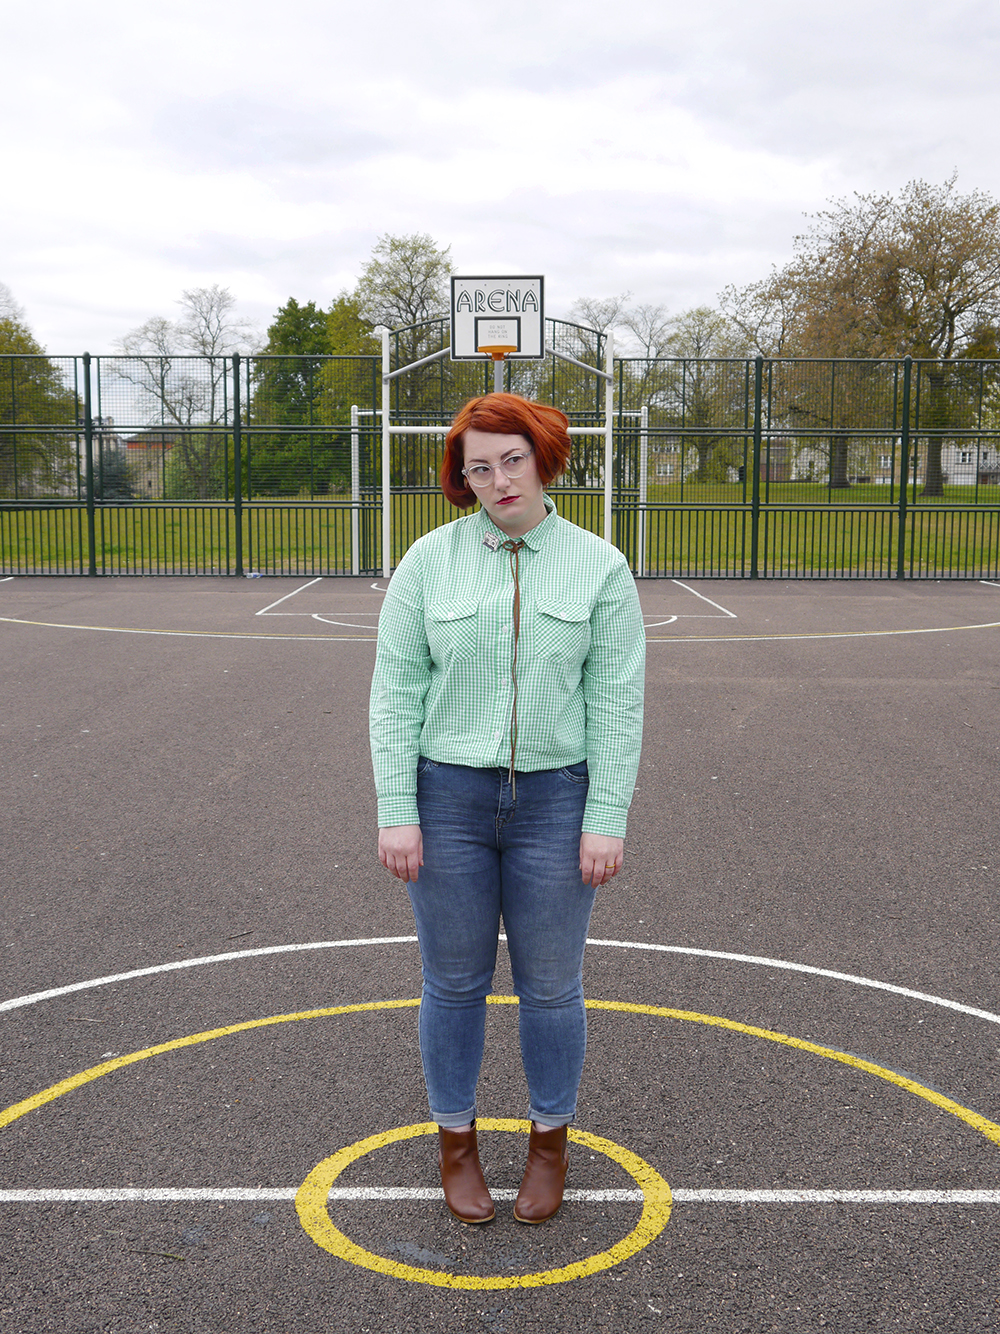 Unlikely Style Icon, blog birthday, Wardrobe Conversations, Scottish bloggers, Scottish fashoin bloggers, Dundee bloggers, Pedro Sanchez, Vote for Pedro, Napoleon Dynamite style, Napoleon Dynamite costume, easy costume idea, film costume, movies costume idea, charity shop find, checked shirt, green gingham shirt, little lies boho necklace, cassestte brooch, cowgirl style, western style, simple wild west outfit, new look jeans, zara brown boots, bad hair day